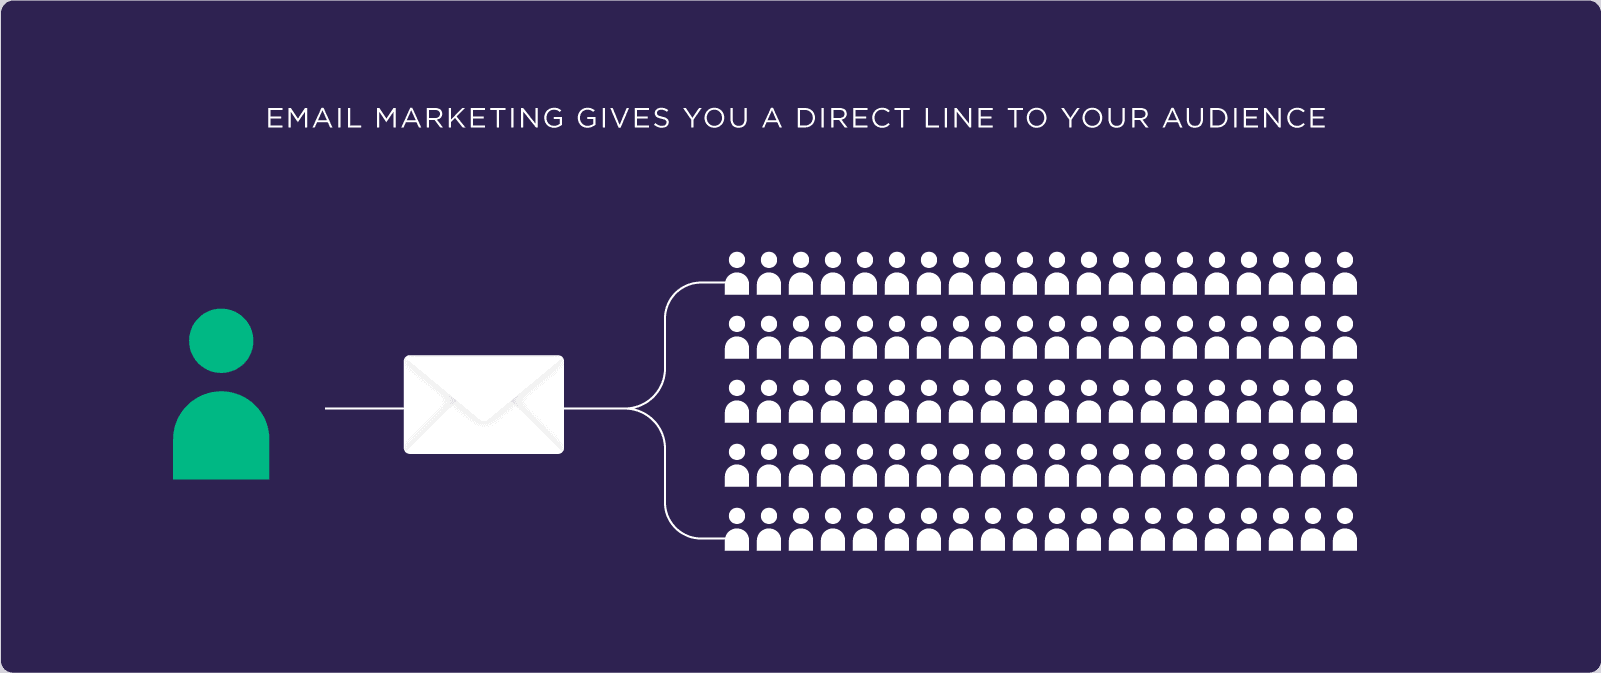 Email marketing gives you a direct line to your audience